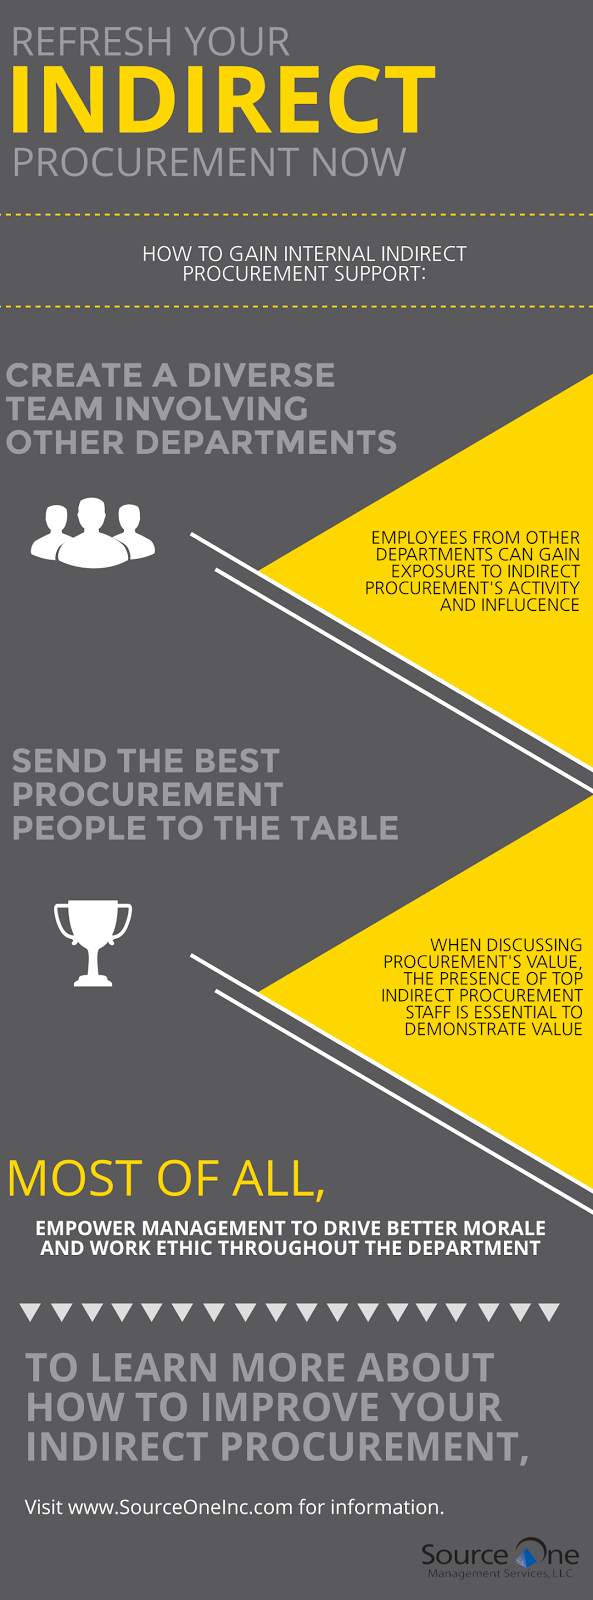 Refresh Your Indirect Procurement Now - The Strategic Sourceror